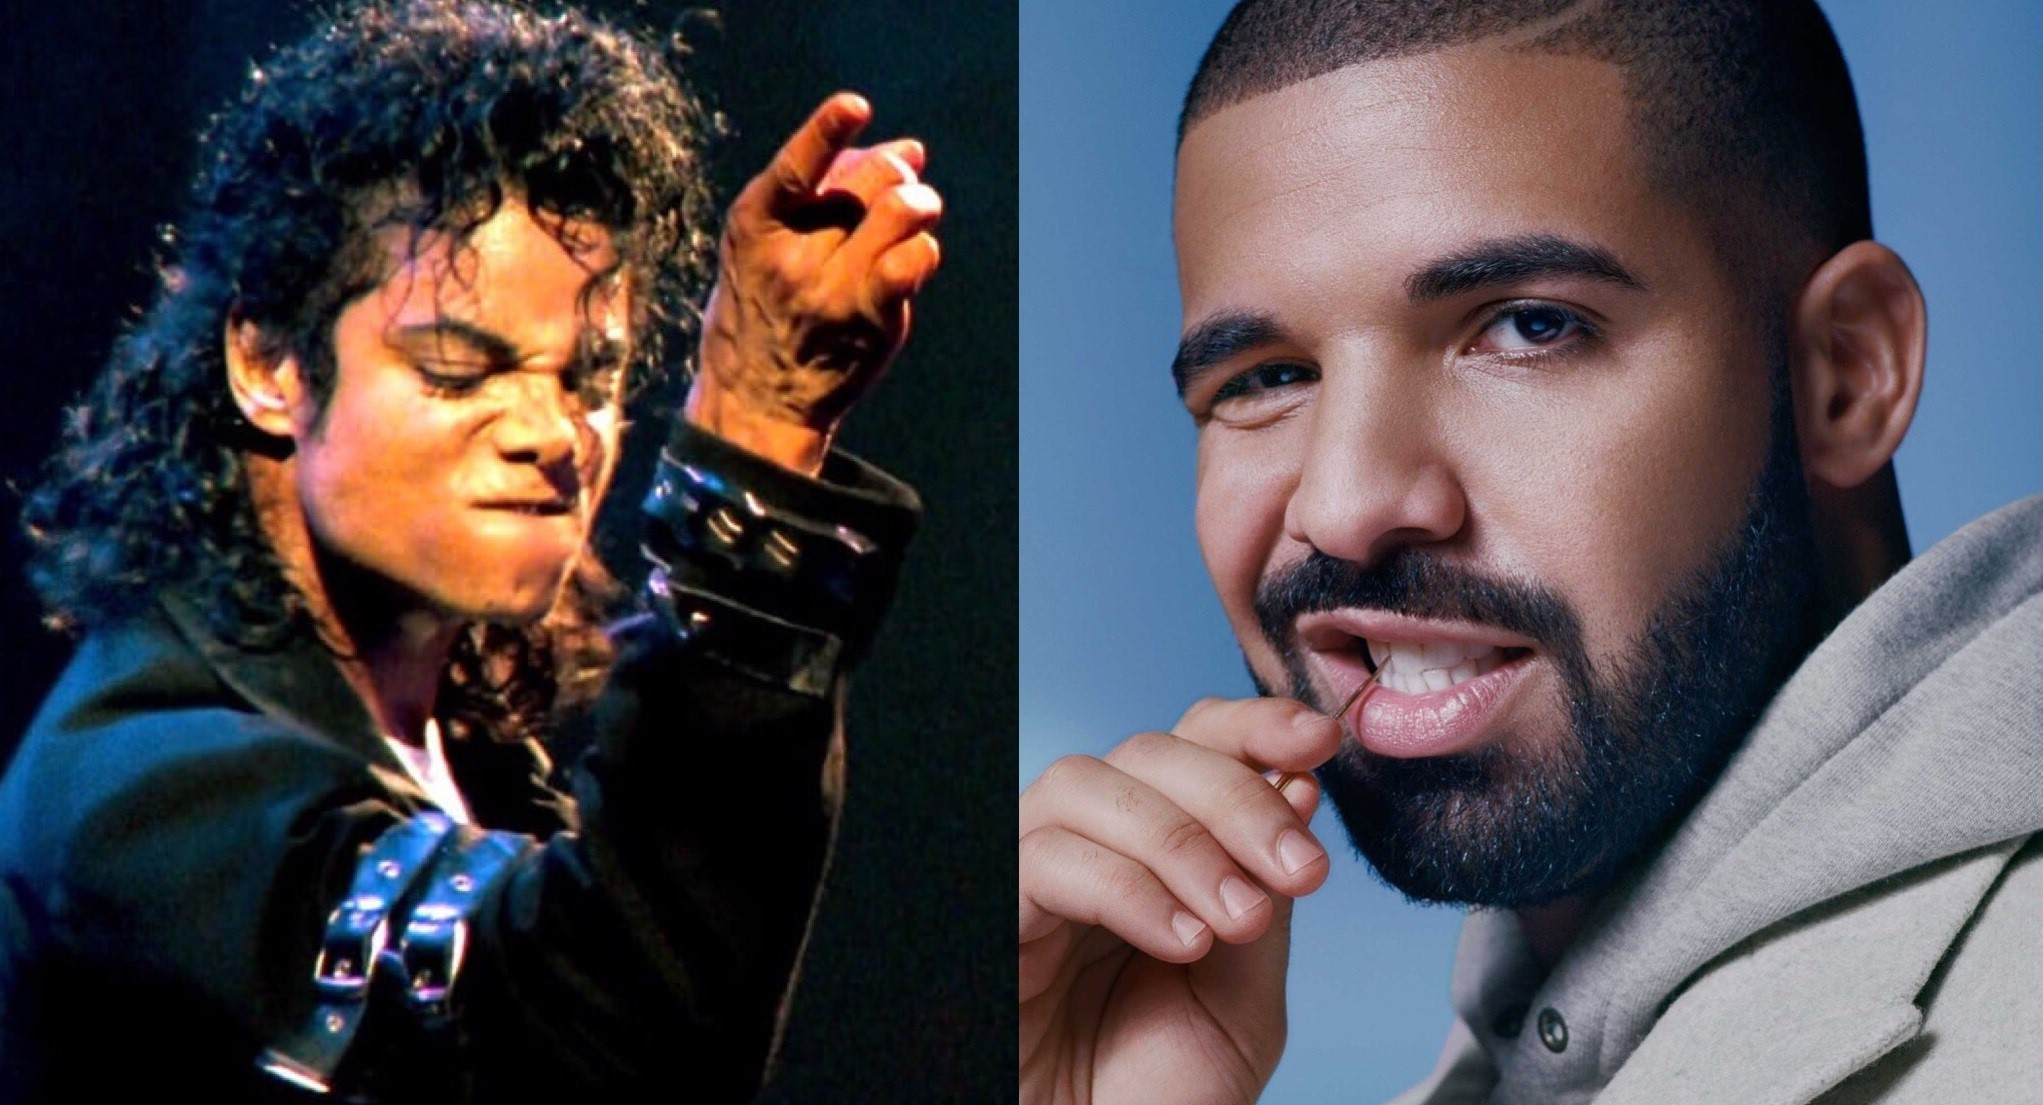 Michael Jackson Earns 30th Hot 100 Top 10 Thanks to Drake's 'Don't Matter to Me'